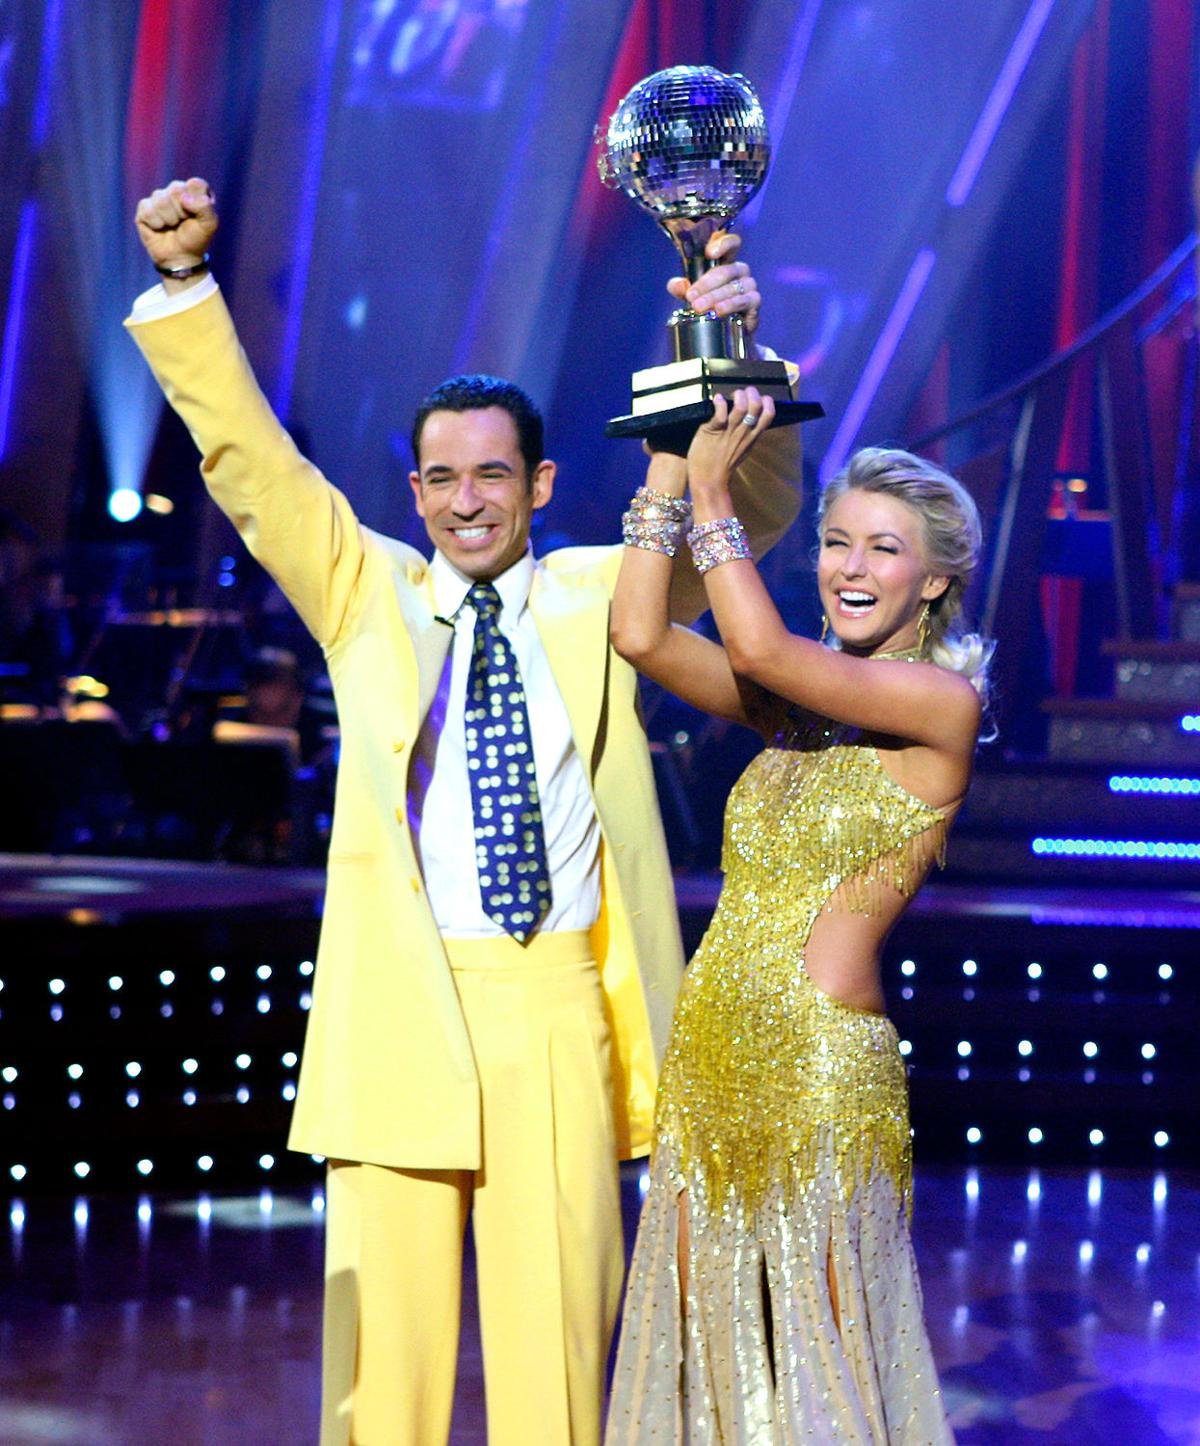 Helio Castroneves DWTS